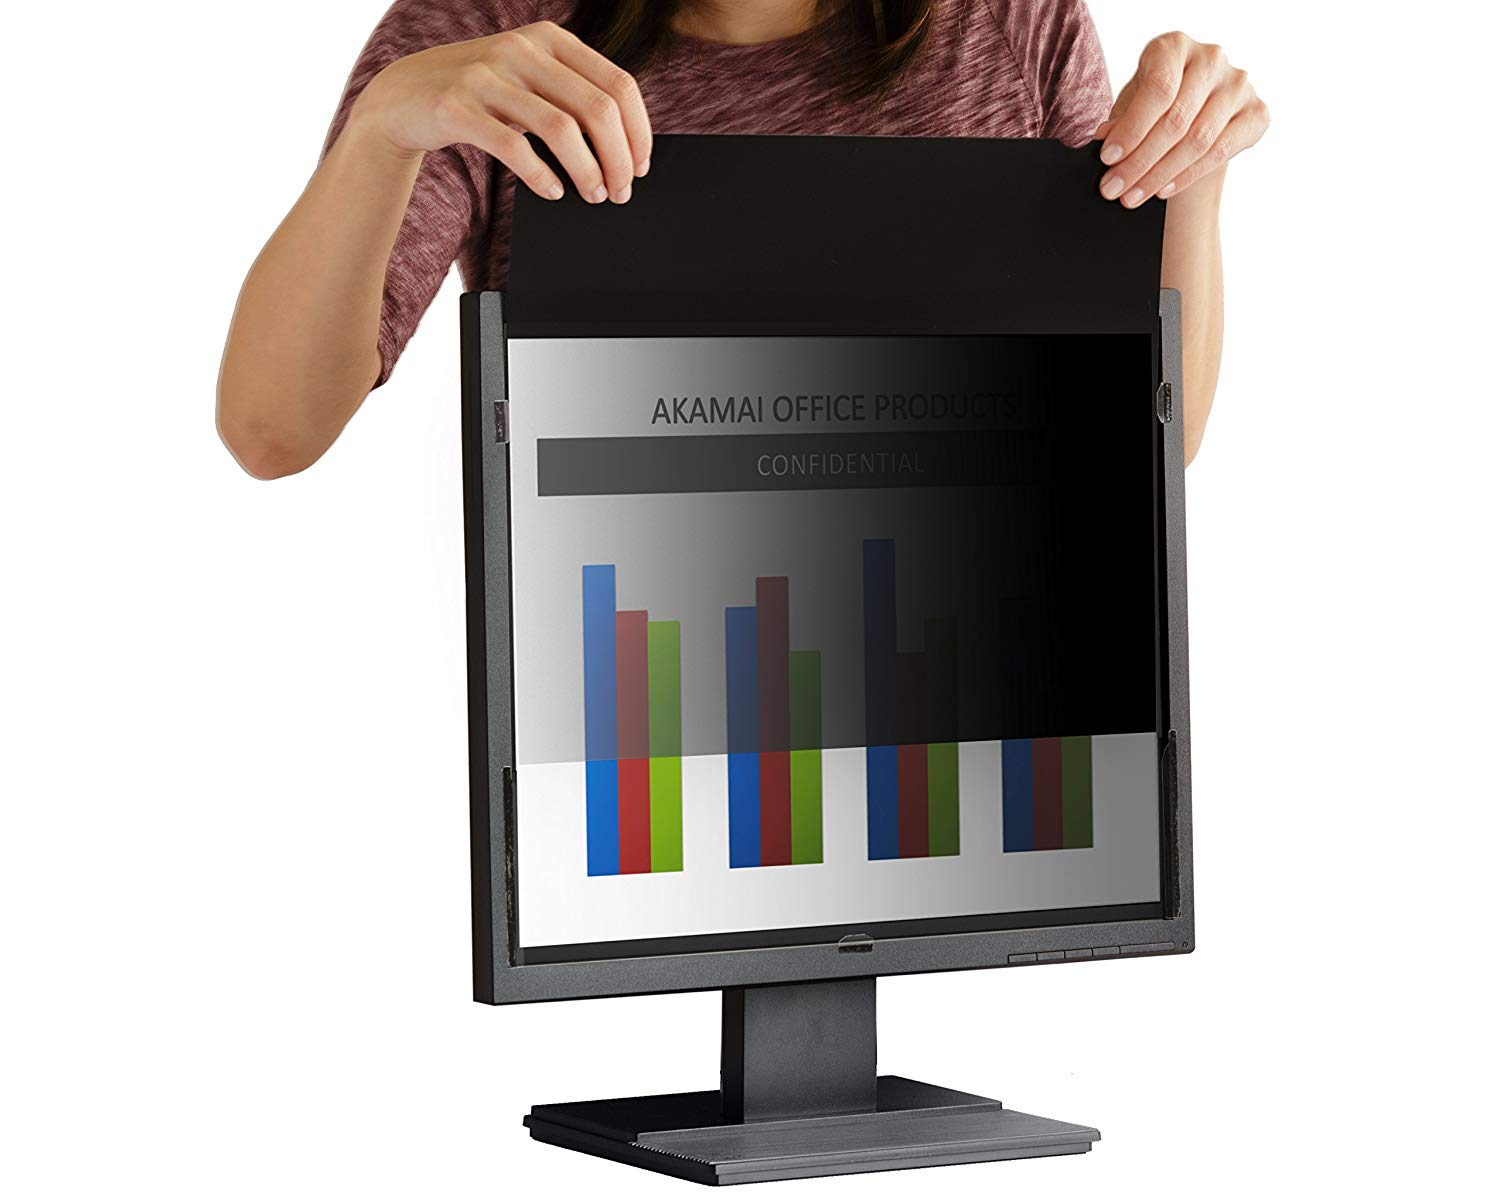 Akamai Office Products 17.0 Inch (Diagonally Measured) SQUARE Privacy Screen Filter for Computer Monitors-Anti Glare (AP17.0)-Please Measure Carefully